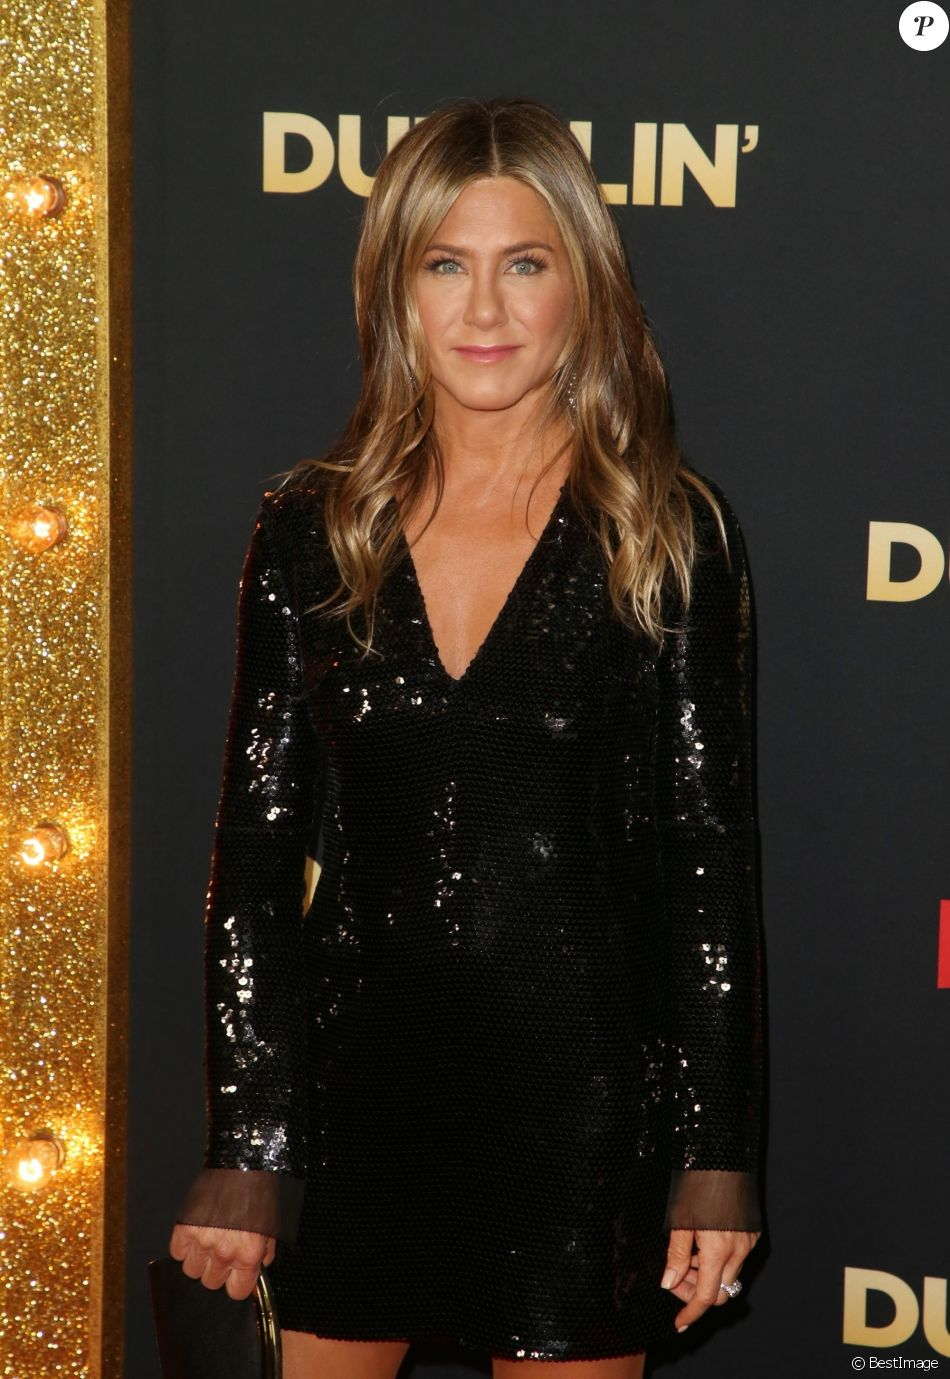 "Jennifer Aniston à la première du film ""Dumplin"" au TCL Chinese 6 Theater à Los Angeles, Californie, Etats-Unis, le 6 décembre 2018."